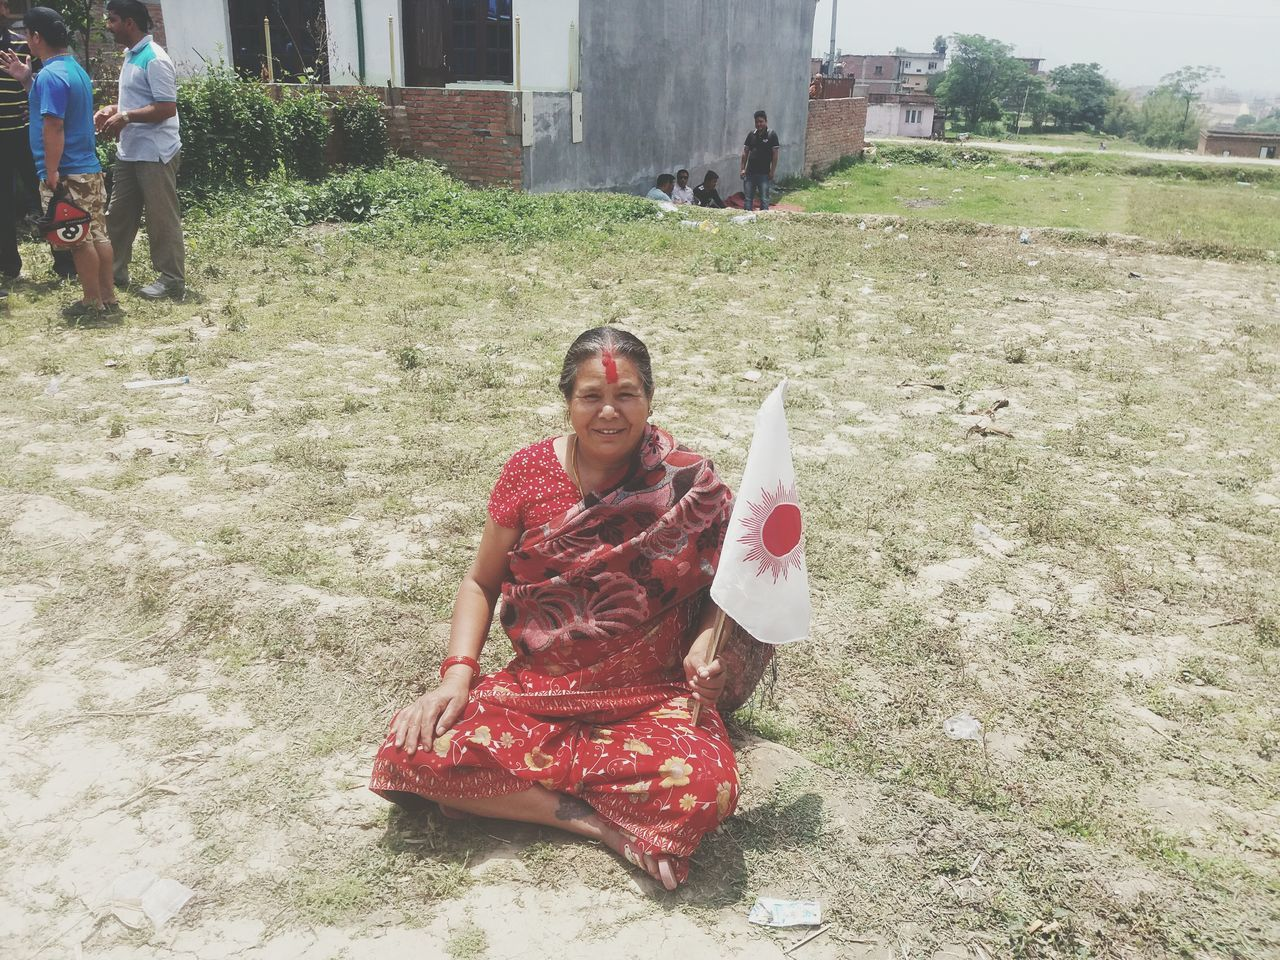 Local election in Nepal Uml Flag Love To Take Photos ❤ Love To UML Women Election Campain Famous Party In Nepal people like election Smiling